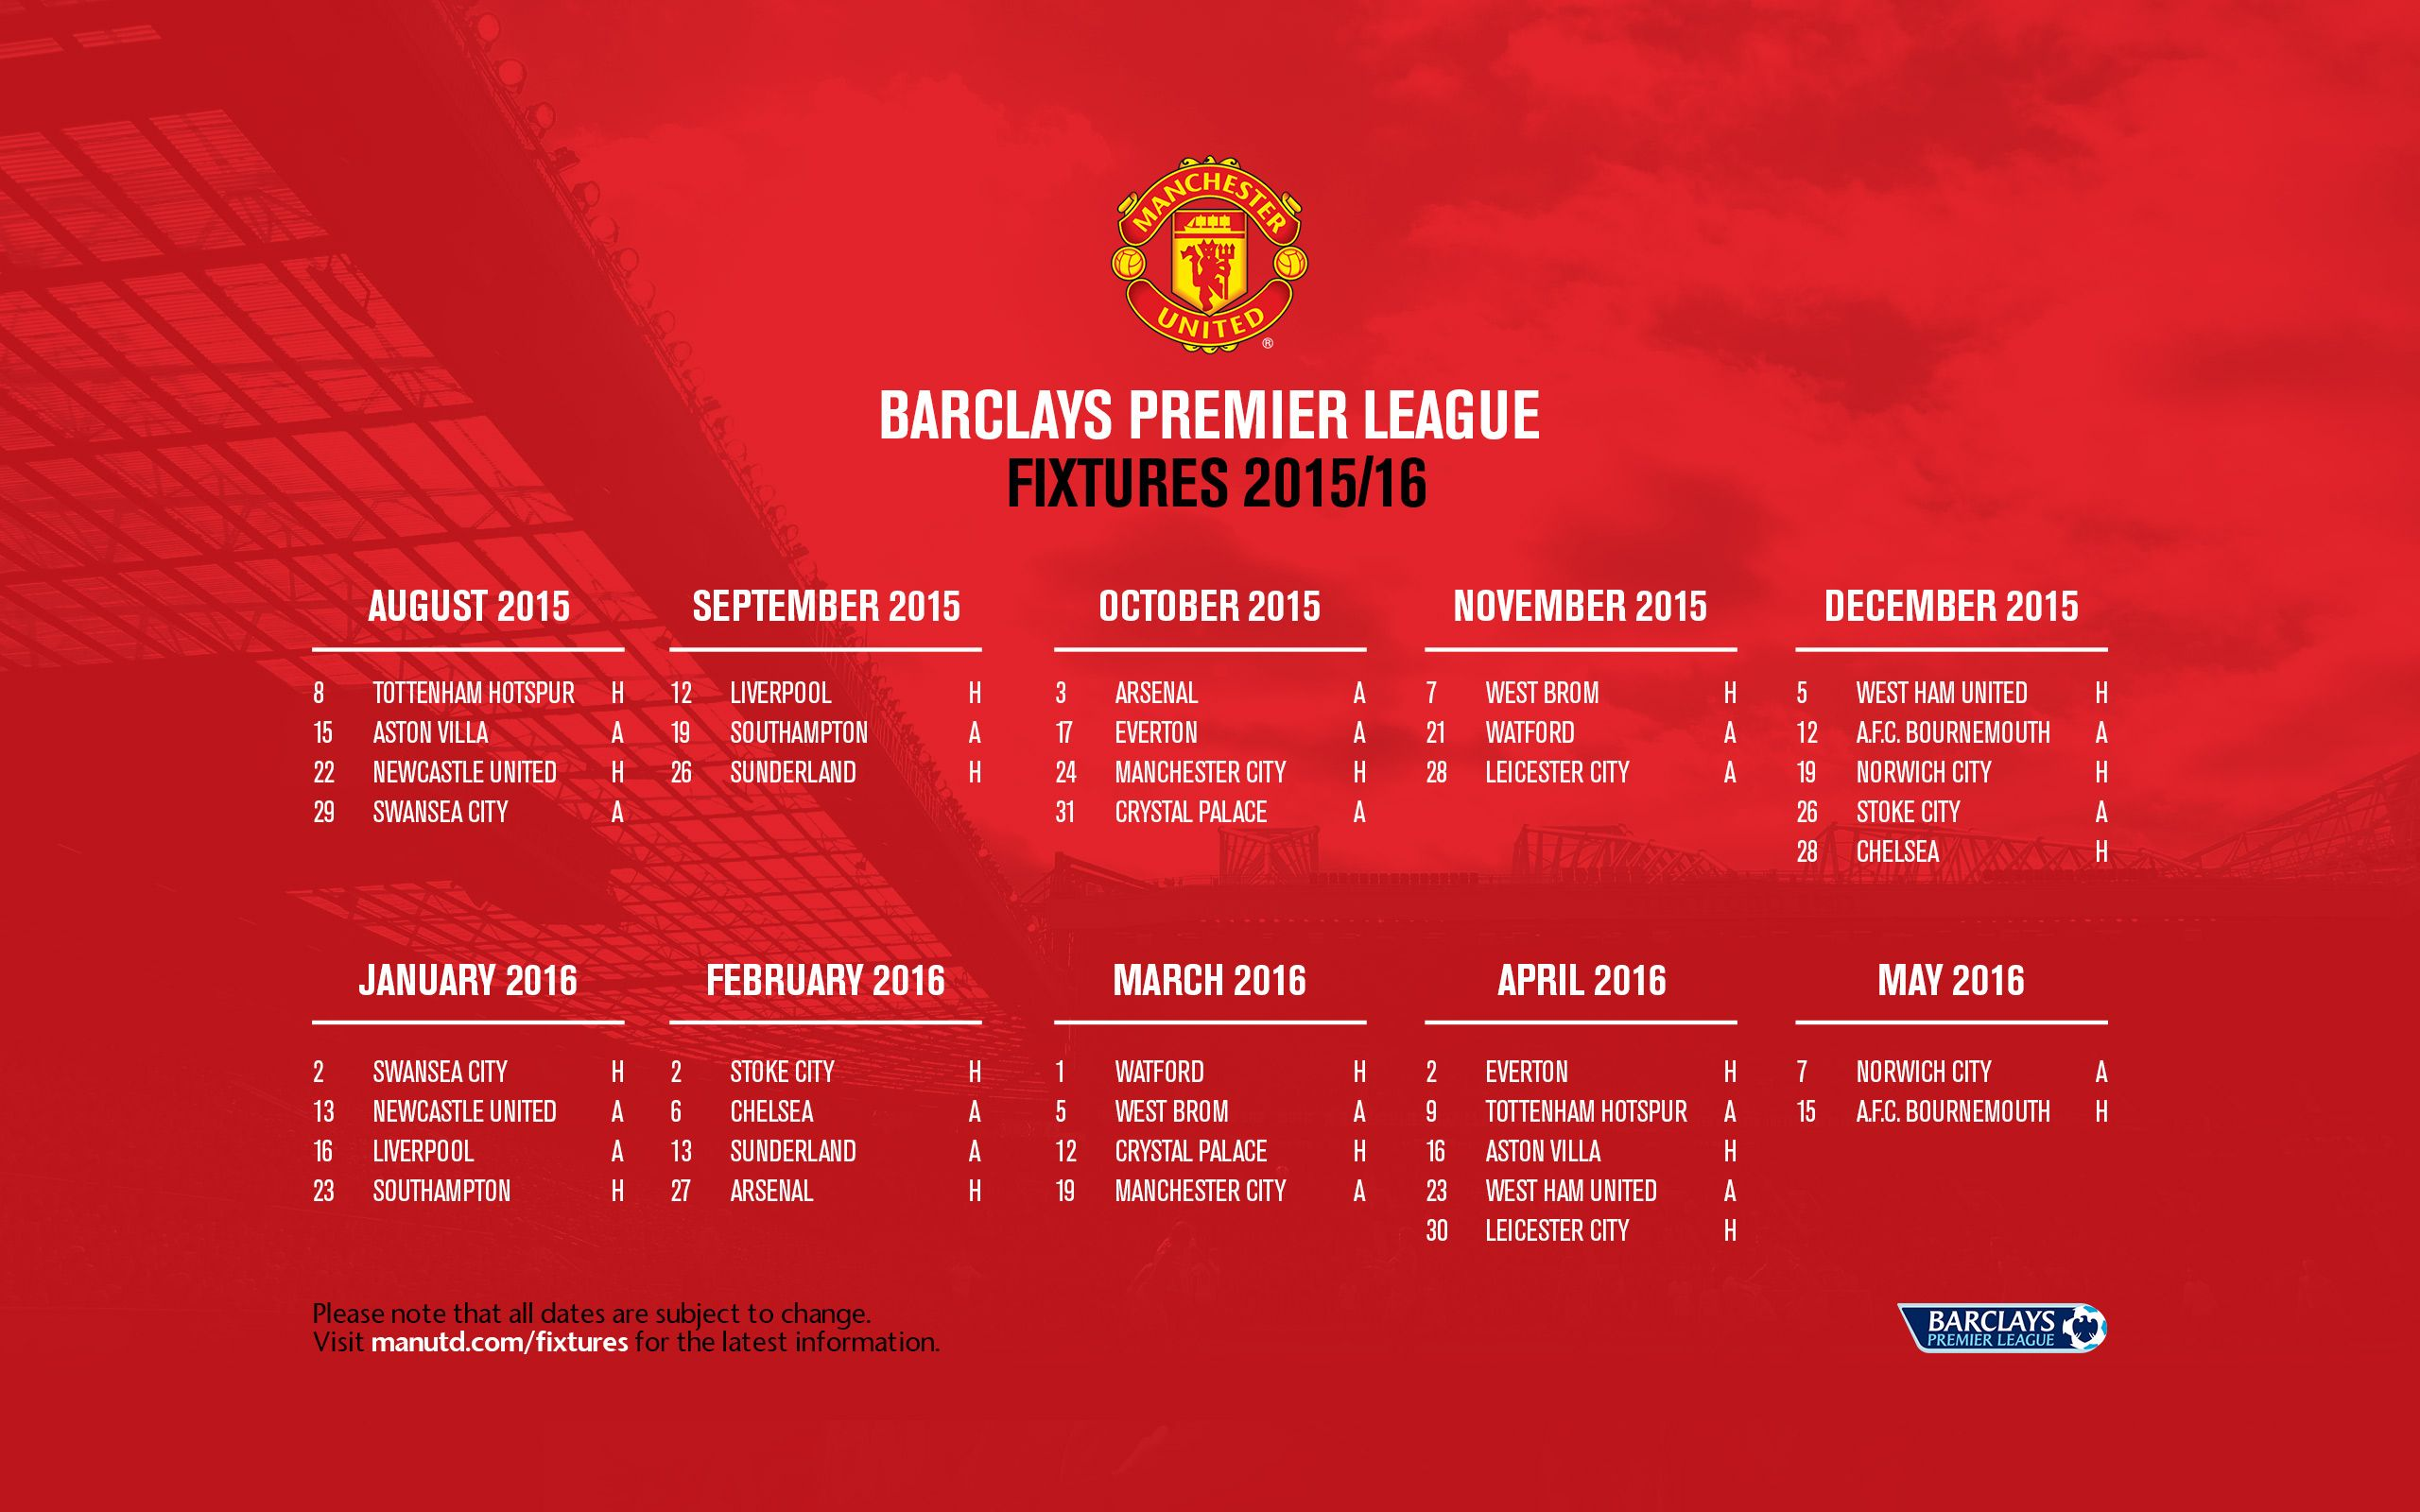 And Cant Wait For This Season Especially When We Are Champions League Bound Again My Story Will Official Manchester United Website Manchester United The Unit